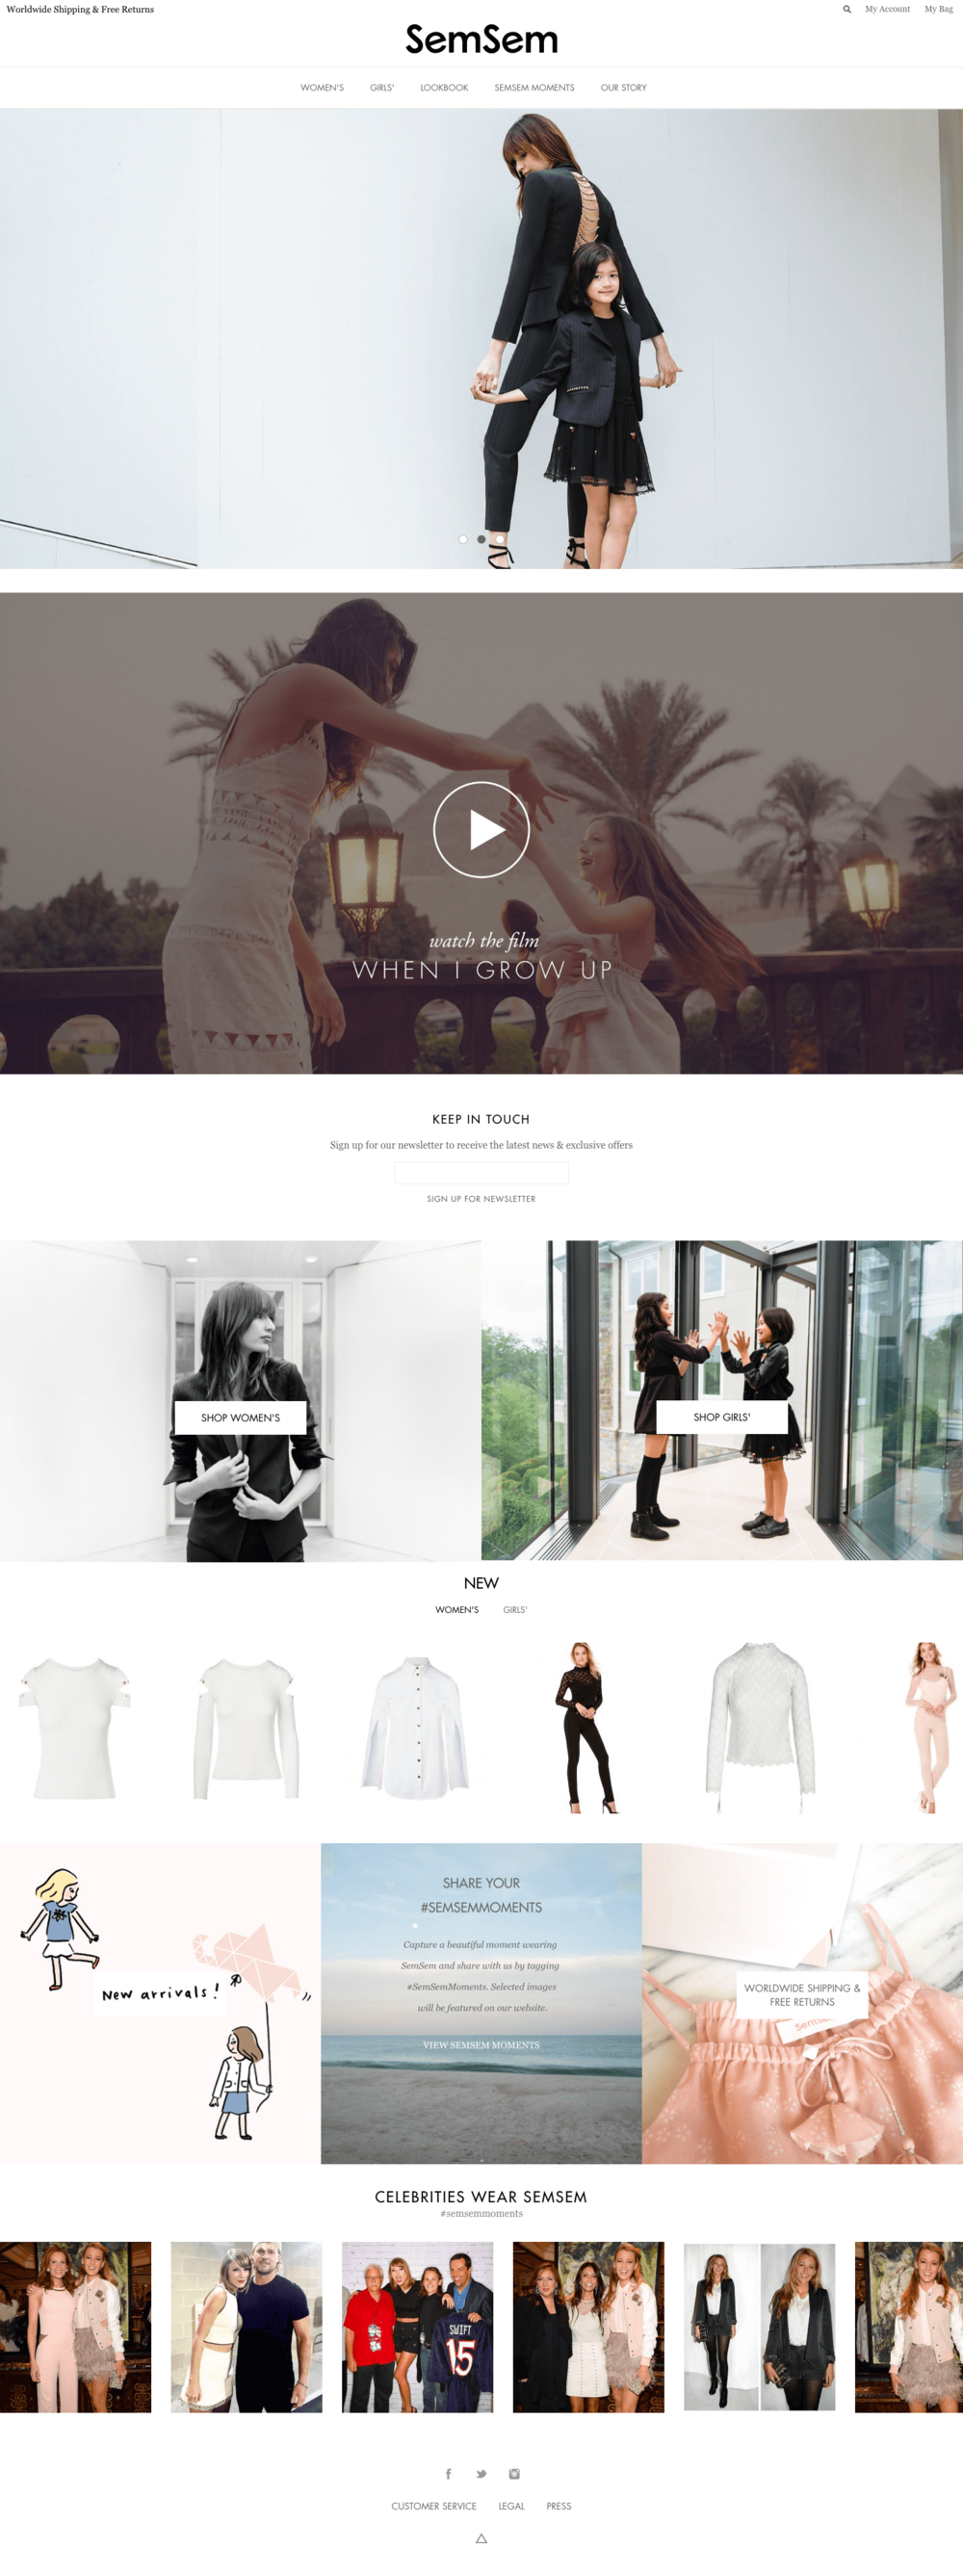 SemSem Official Website  Luxury Fashion.png